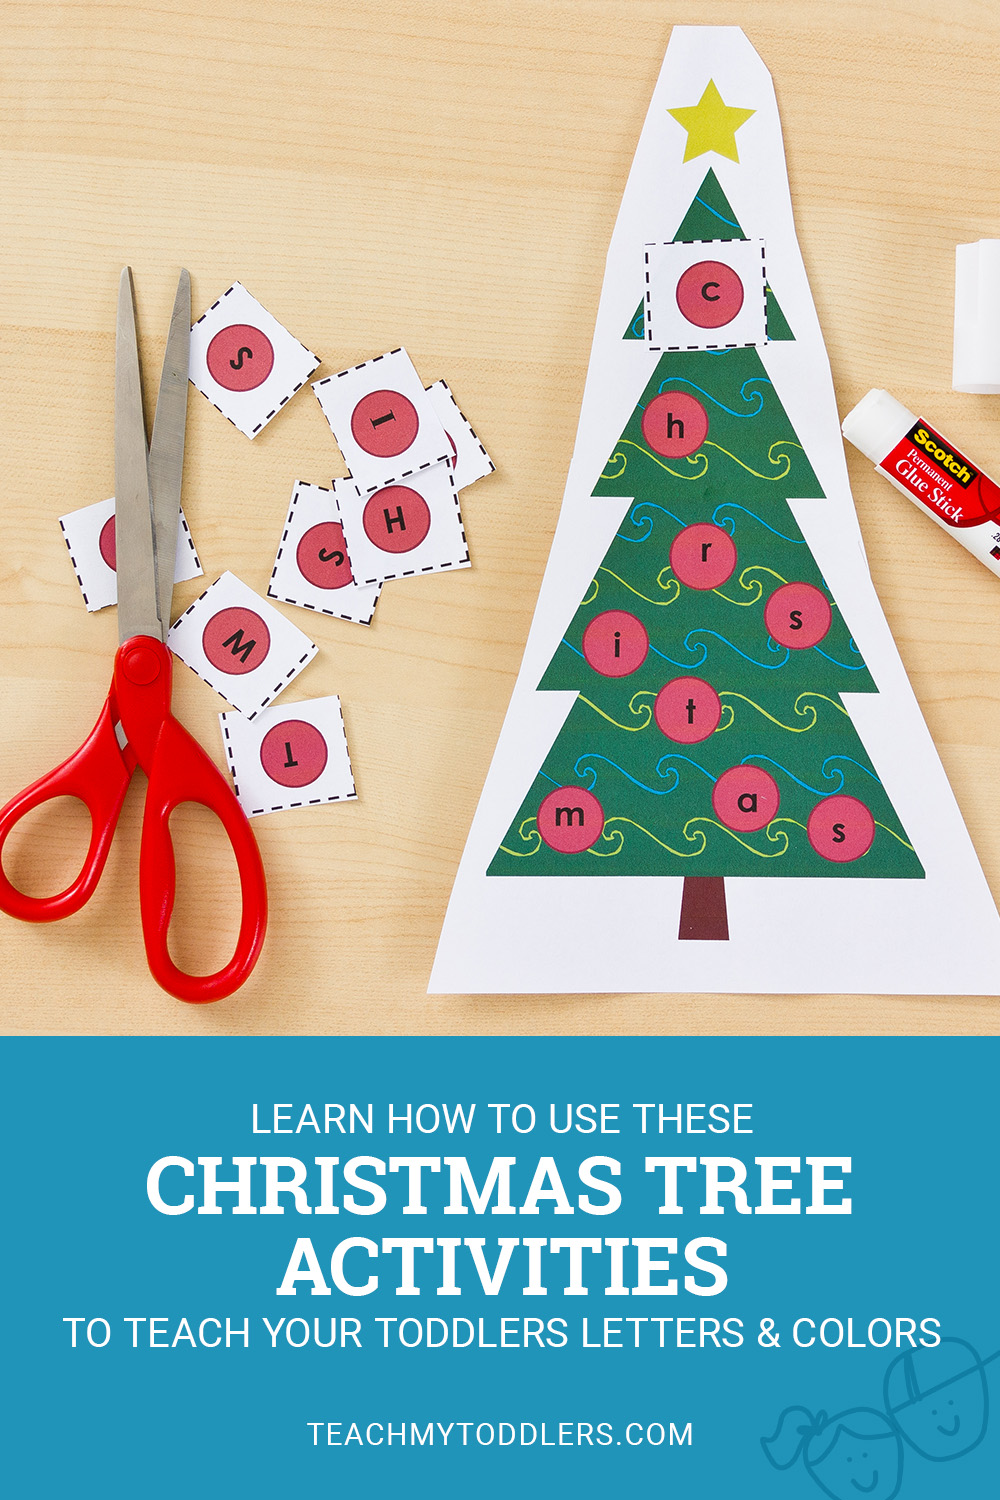 Learn how to use these christmas tree activities to teach toddlers letters and colors